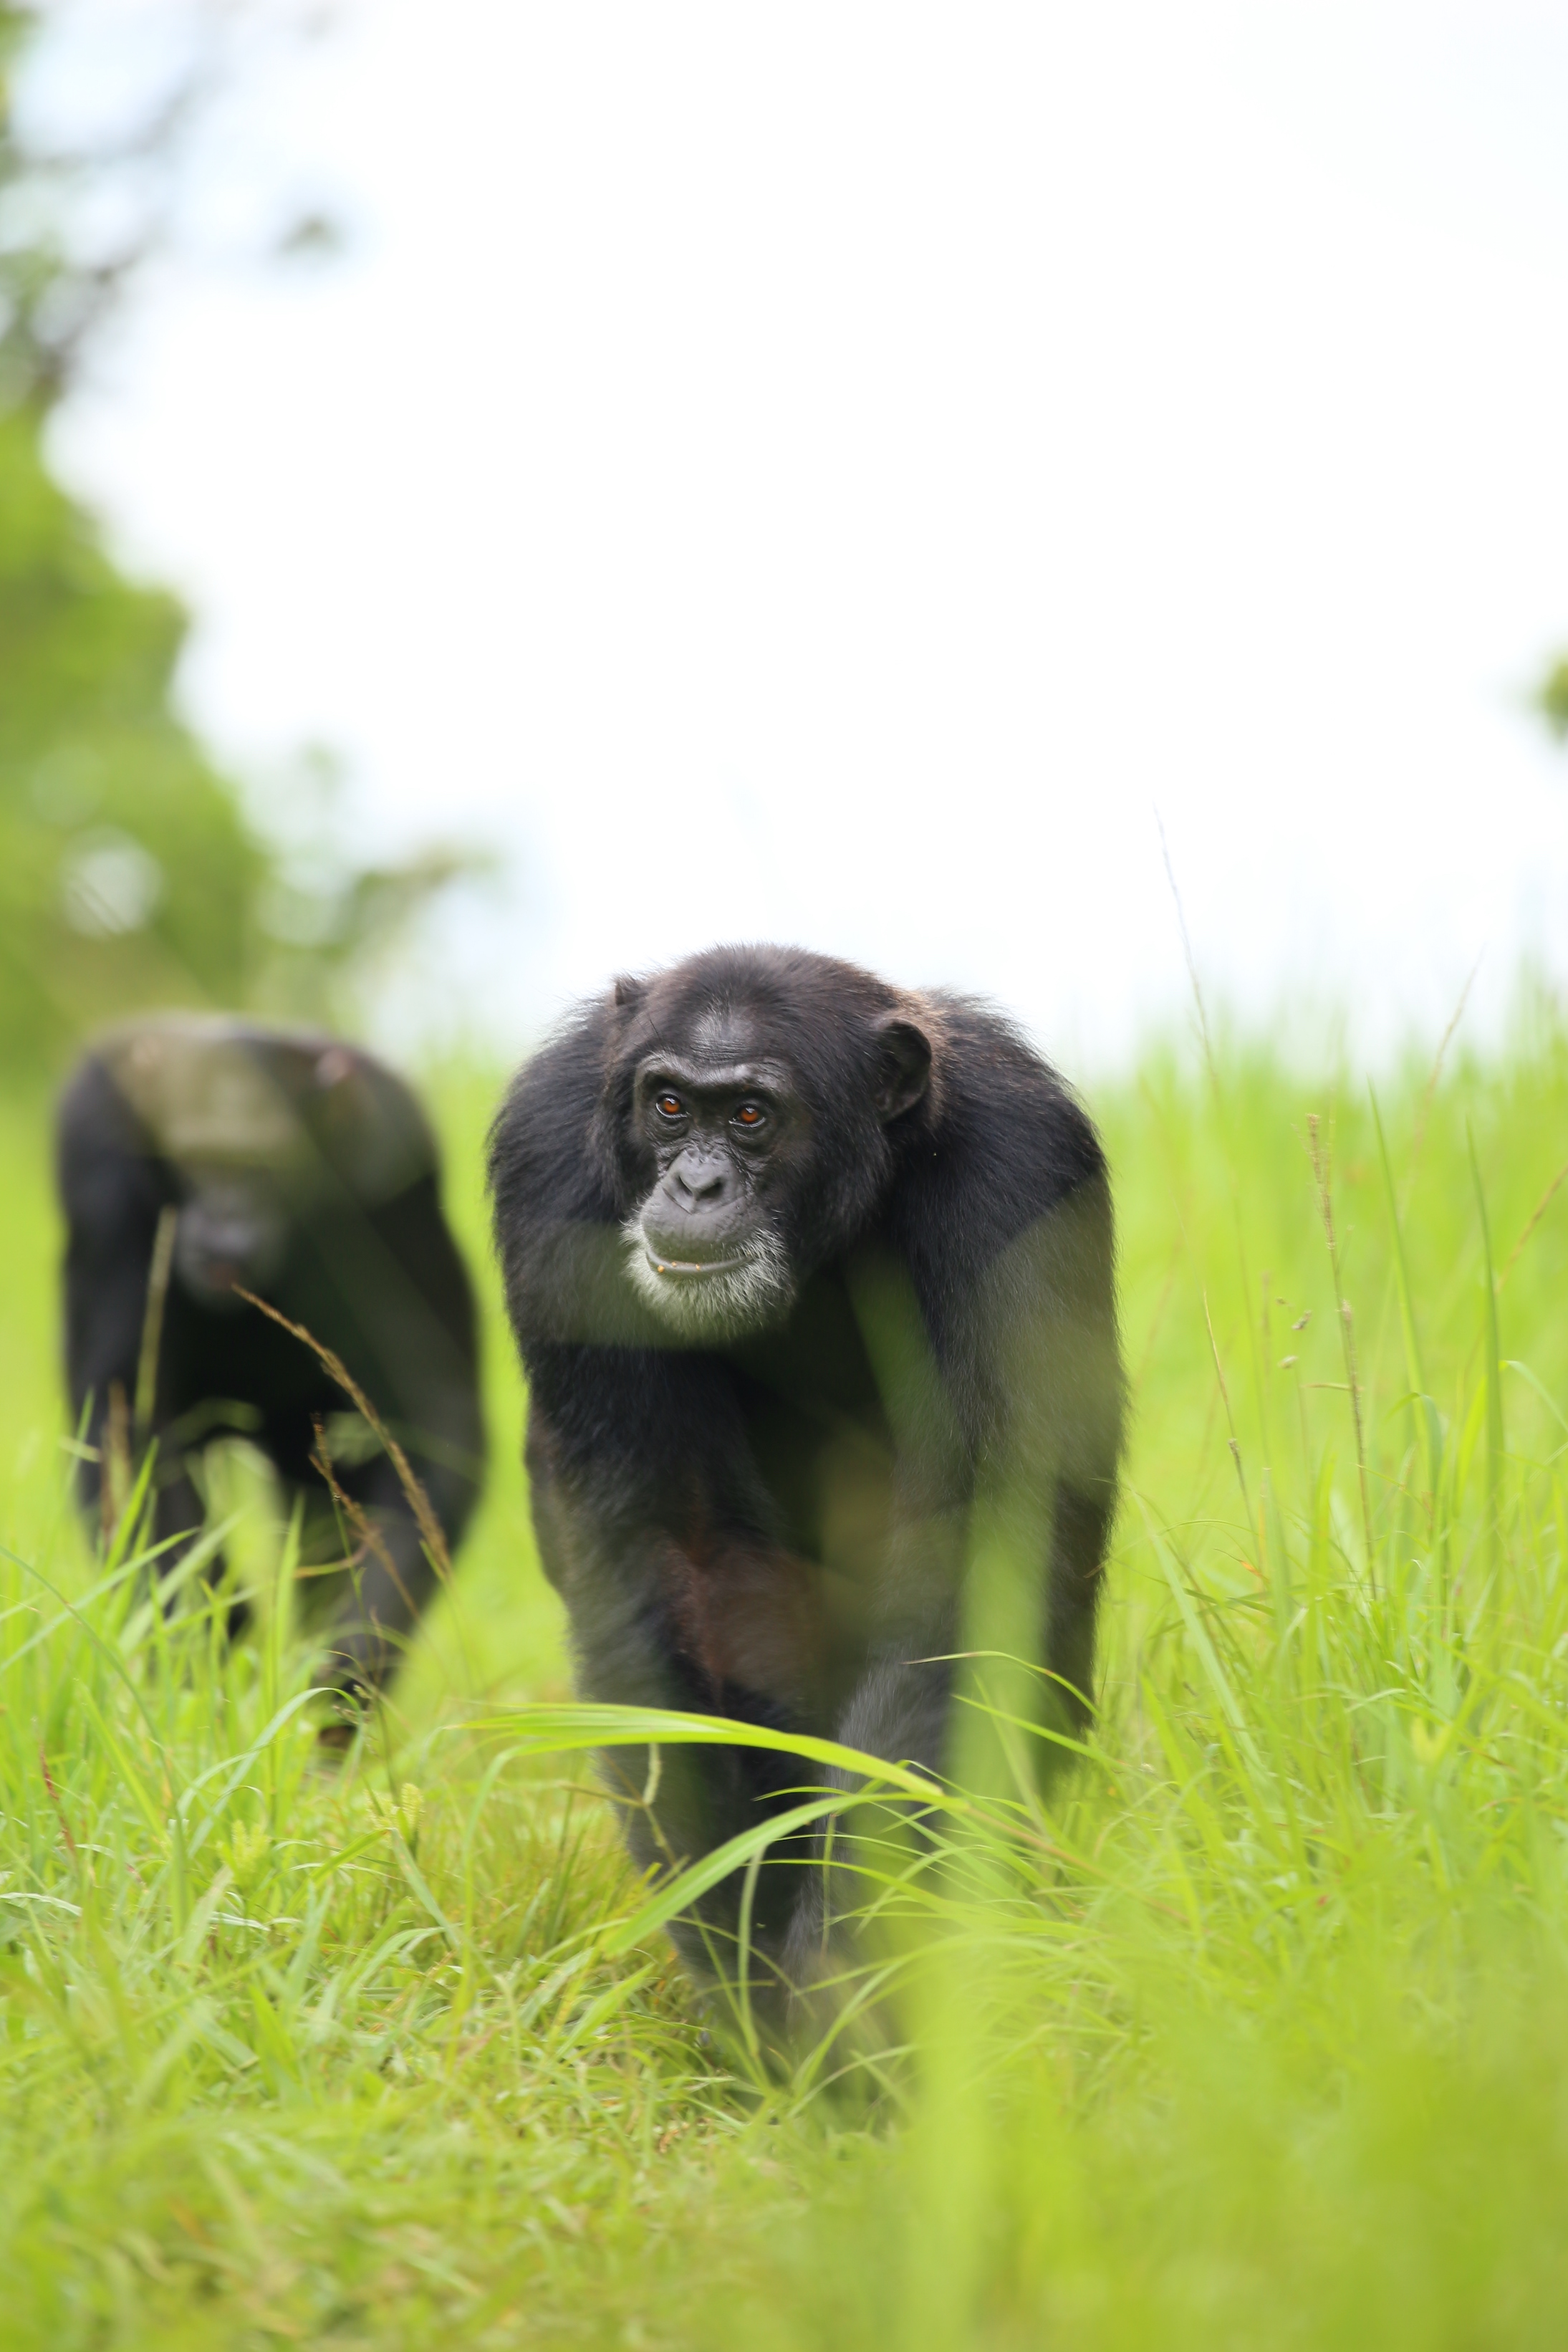 When in their territory, chimpanzees patrol their domain in groups – much for the same reason that wolves hunt in packs.